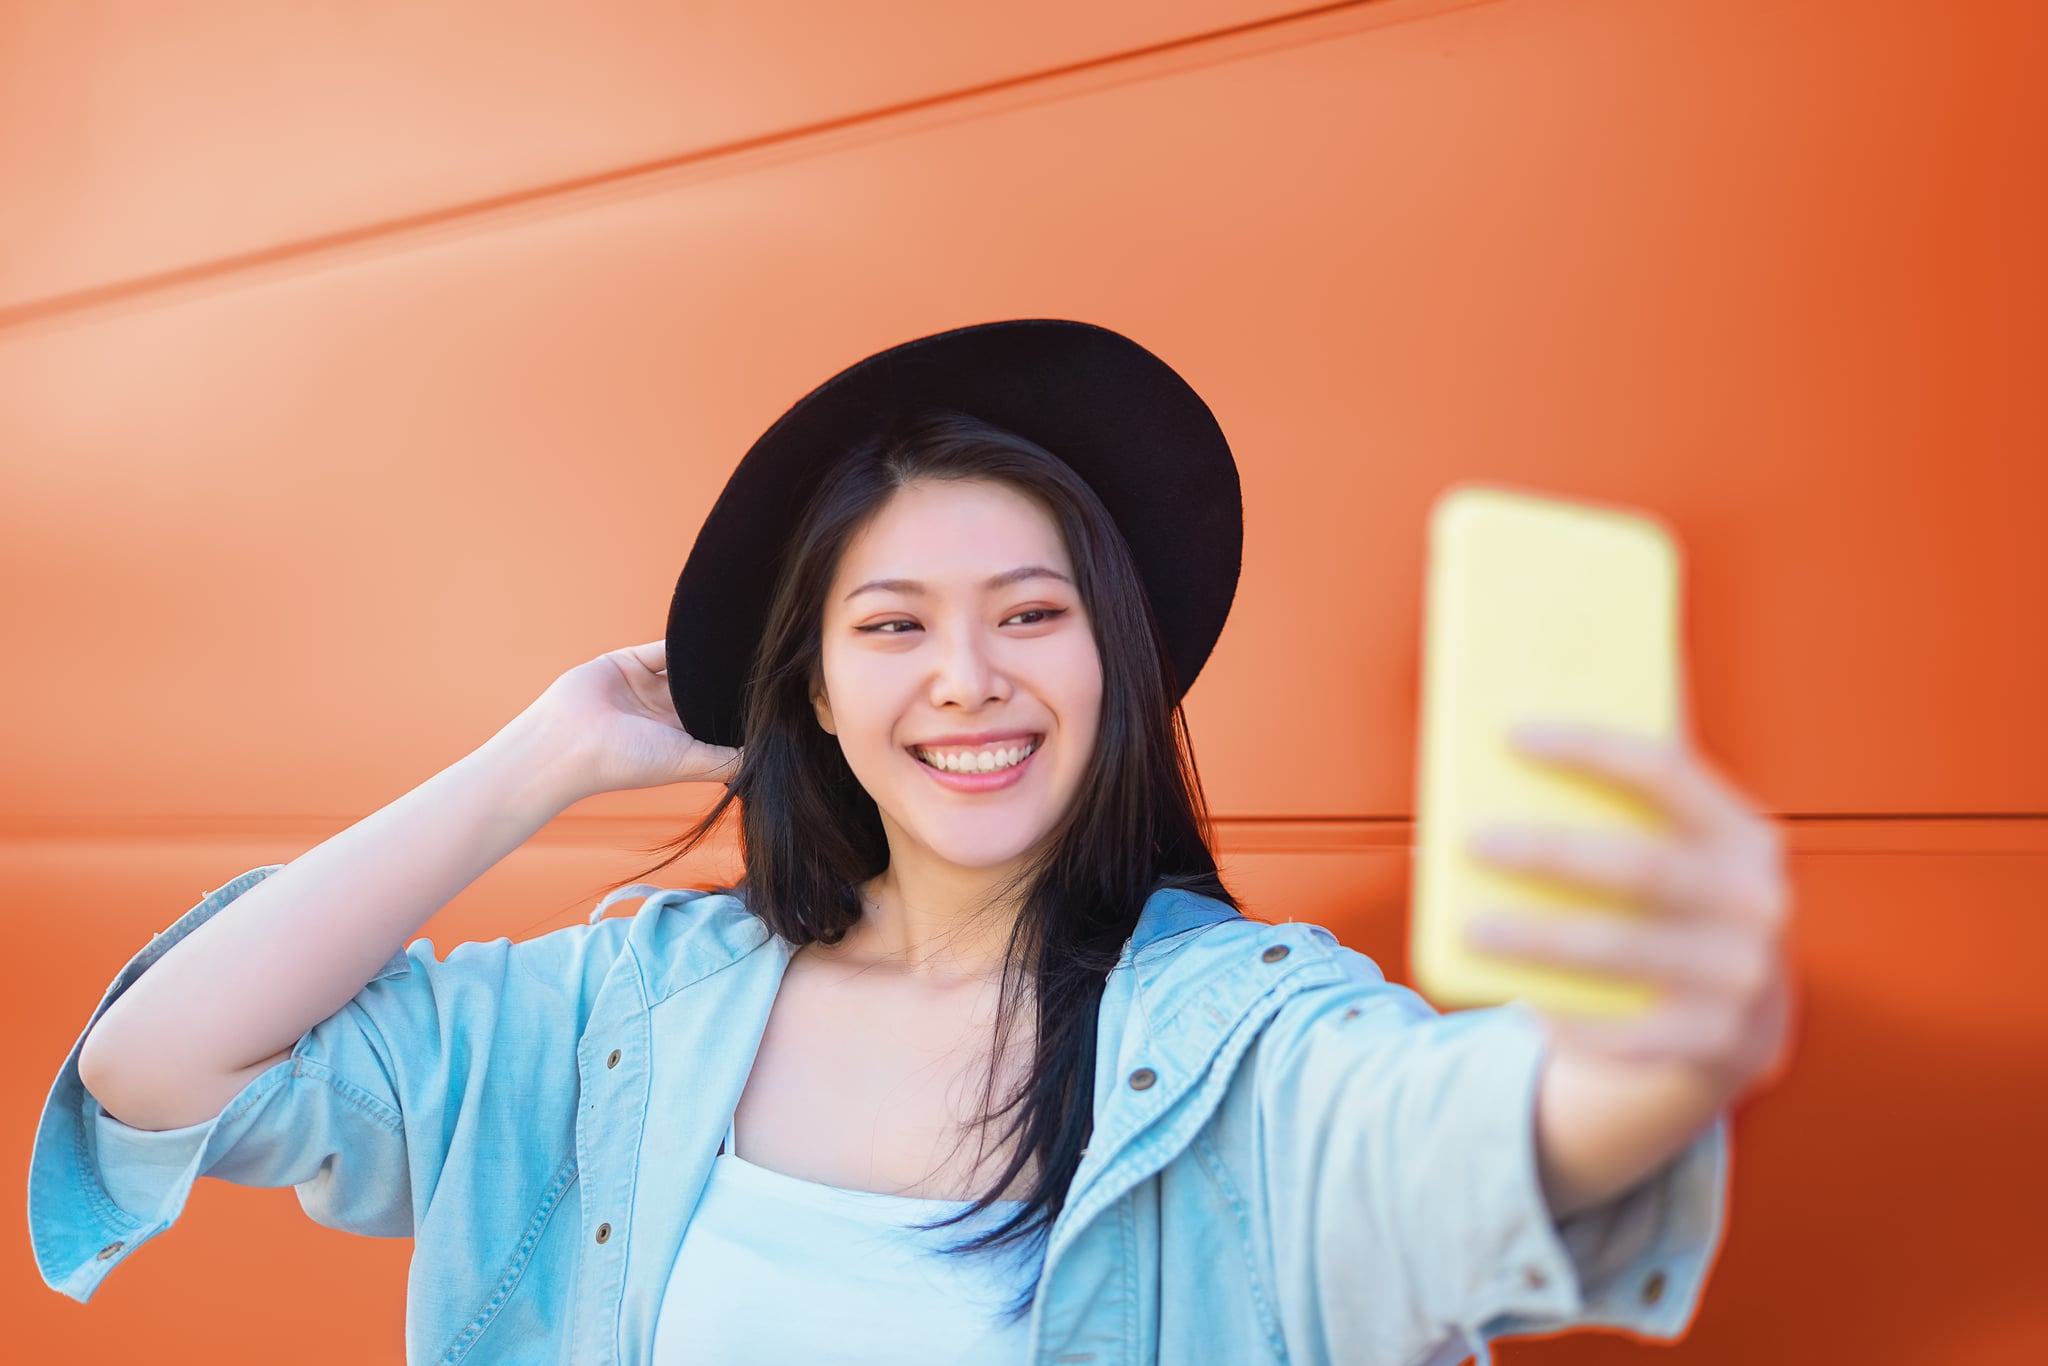 Happy Asian girl taking selfie with mobile smart phone outdoor - Trendy influencer having fun with new trends social networks apps - Millennial generation lifestyle people addicted technology